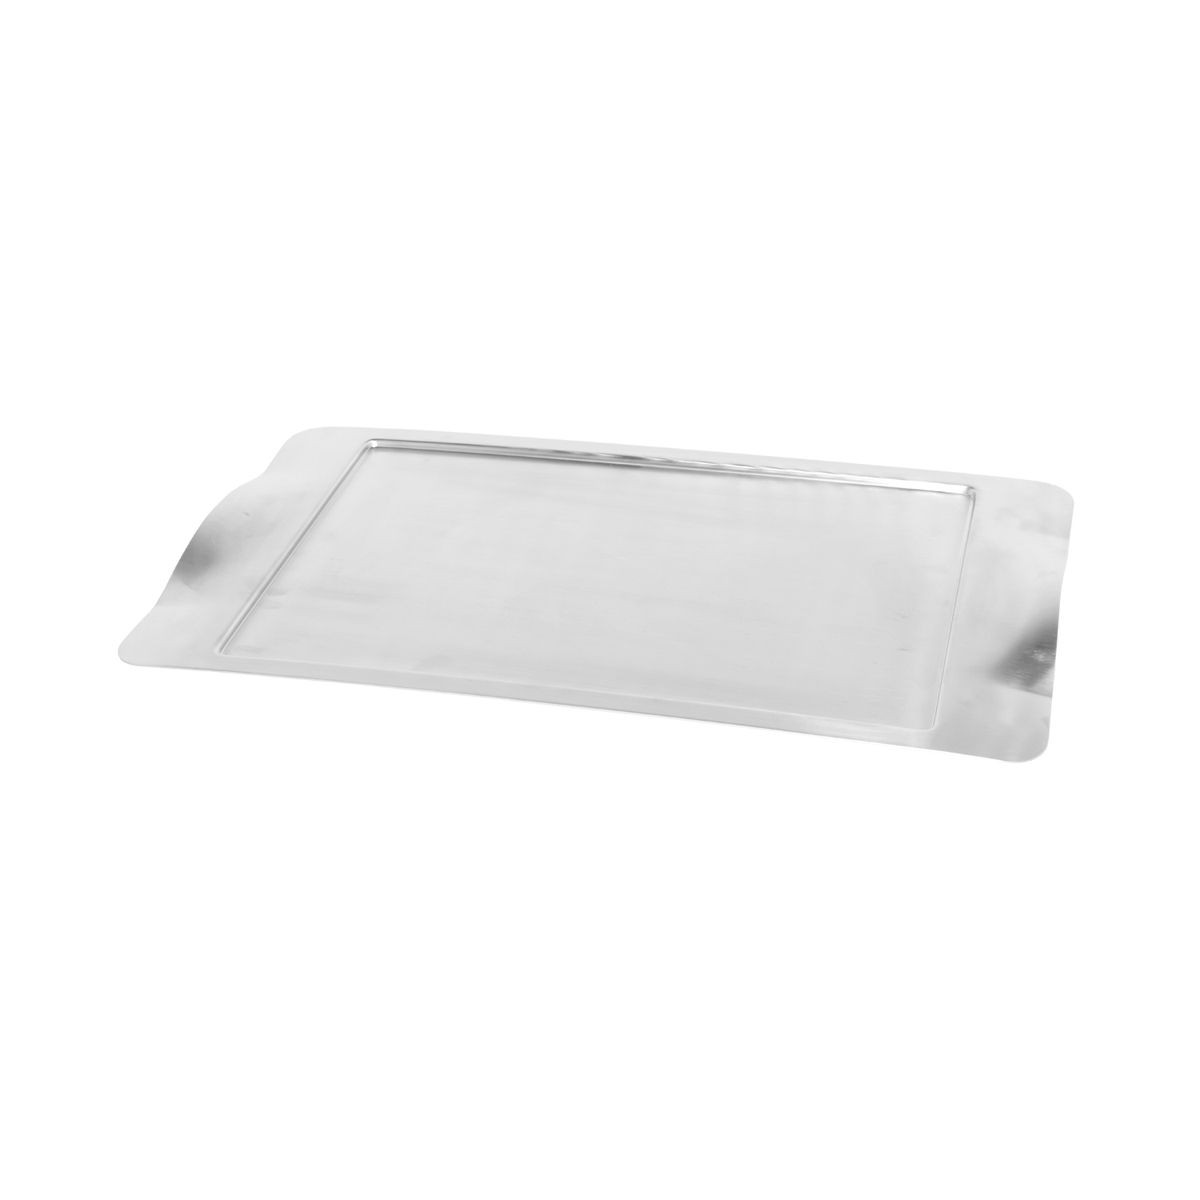 "Service Ideas SB-42 SteelForme Brushed Stainless Steel Rectangular Serving Tray, 20""x 11"""